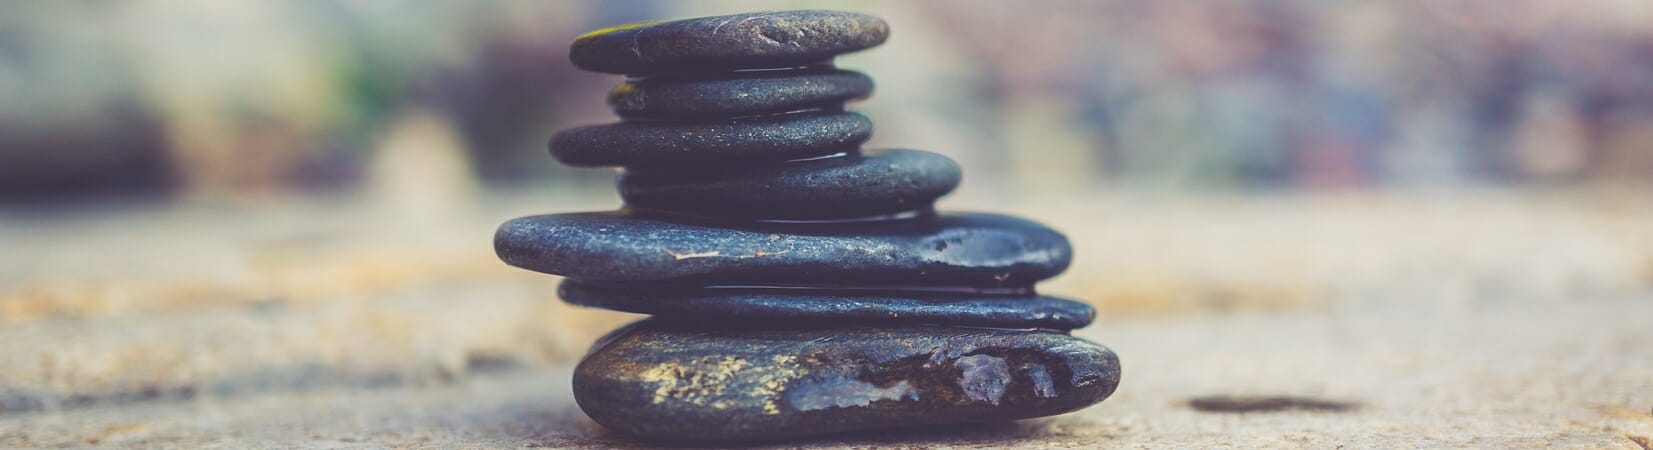 Different stones balanced ontop each other in harmony